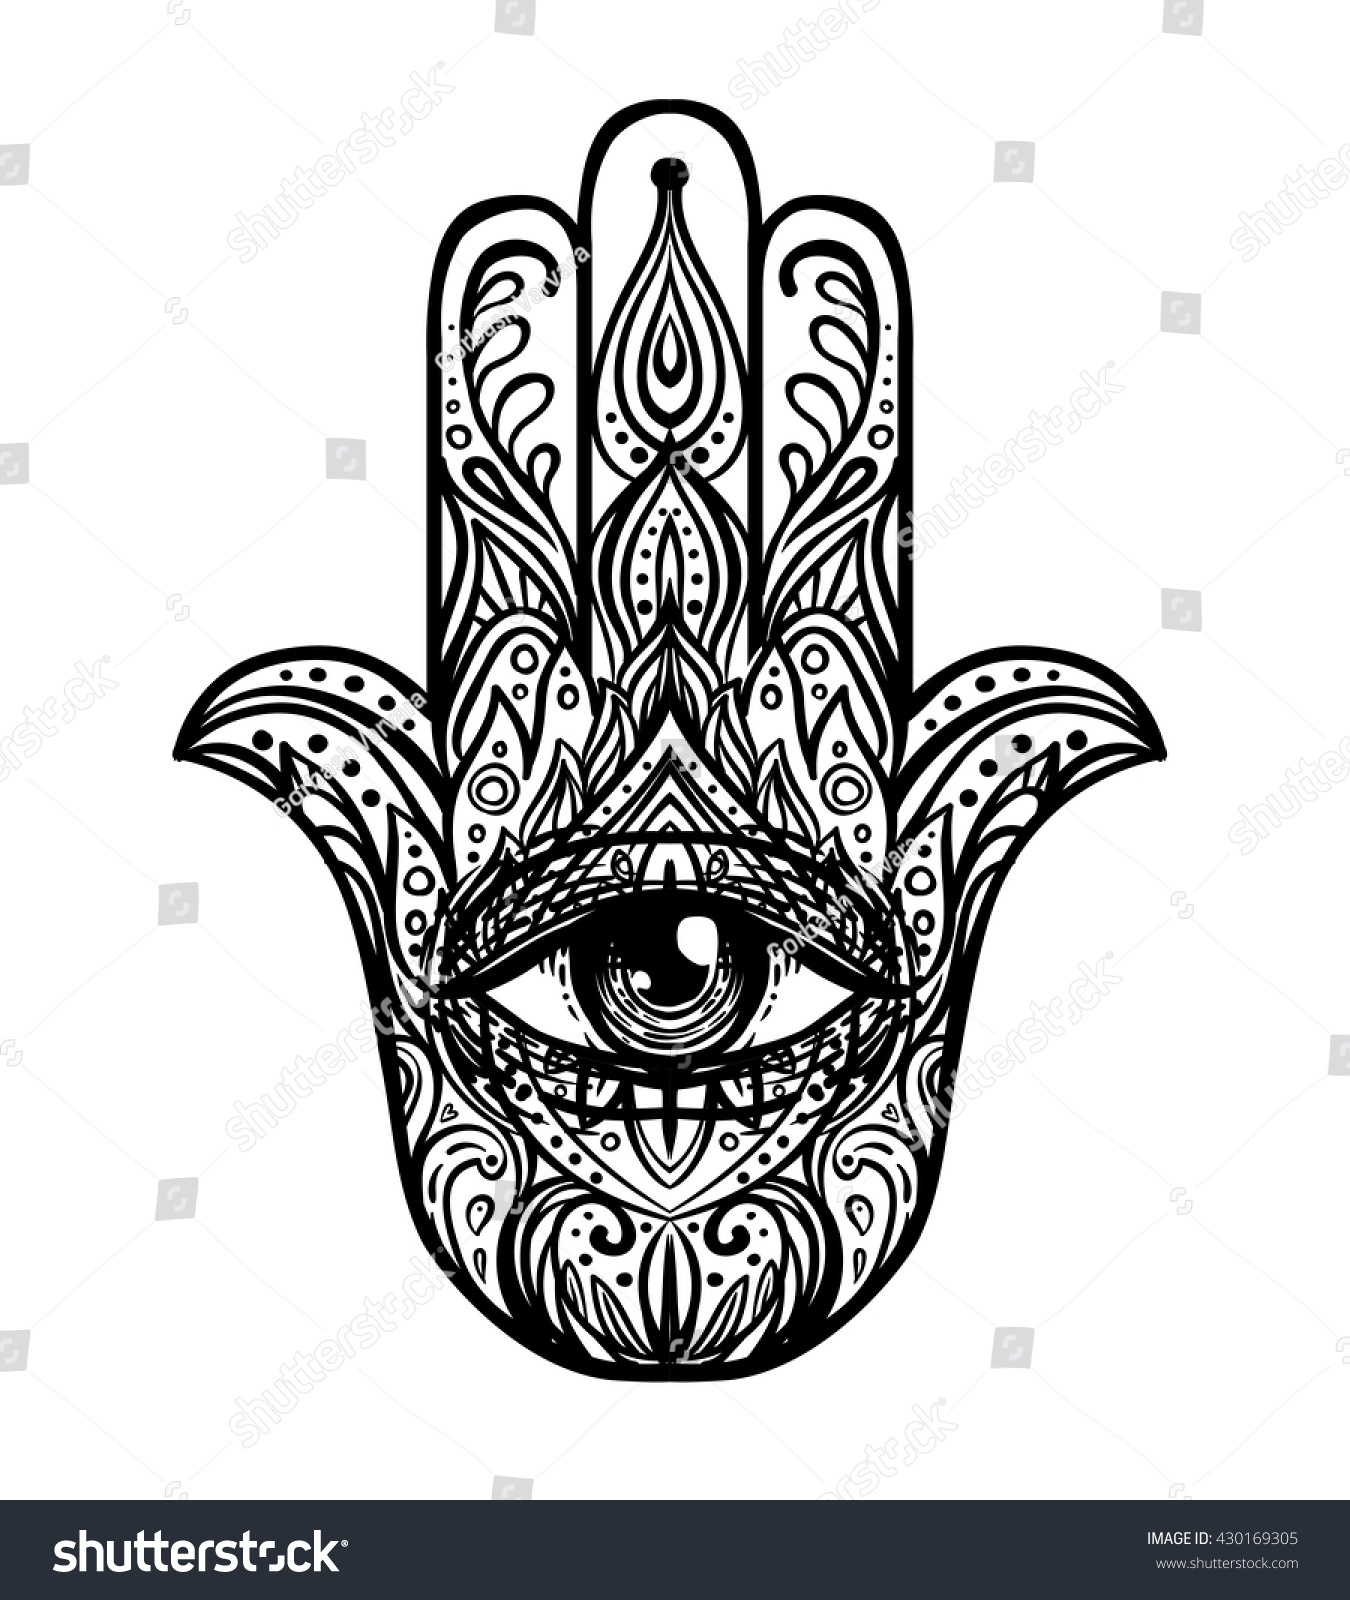 Royalty free blackwork tattoo flash ornate hand 430169305 stock popular arabic and jewish amulet vector illustration isolated on white tattoo design mystic symbol coloring book for adults stock photo biocorpaavc Choice Image